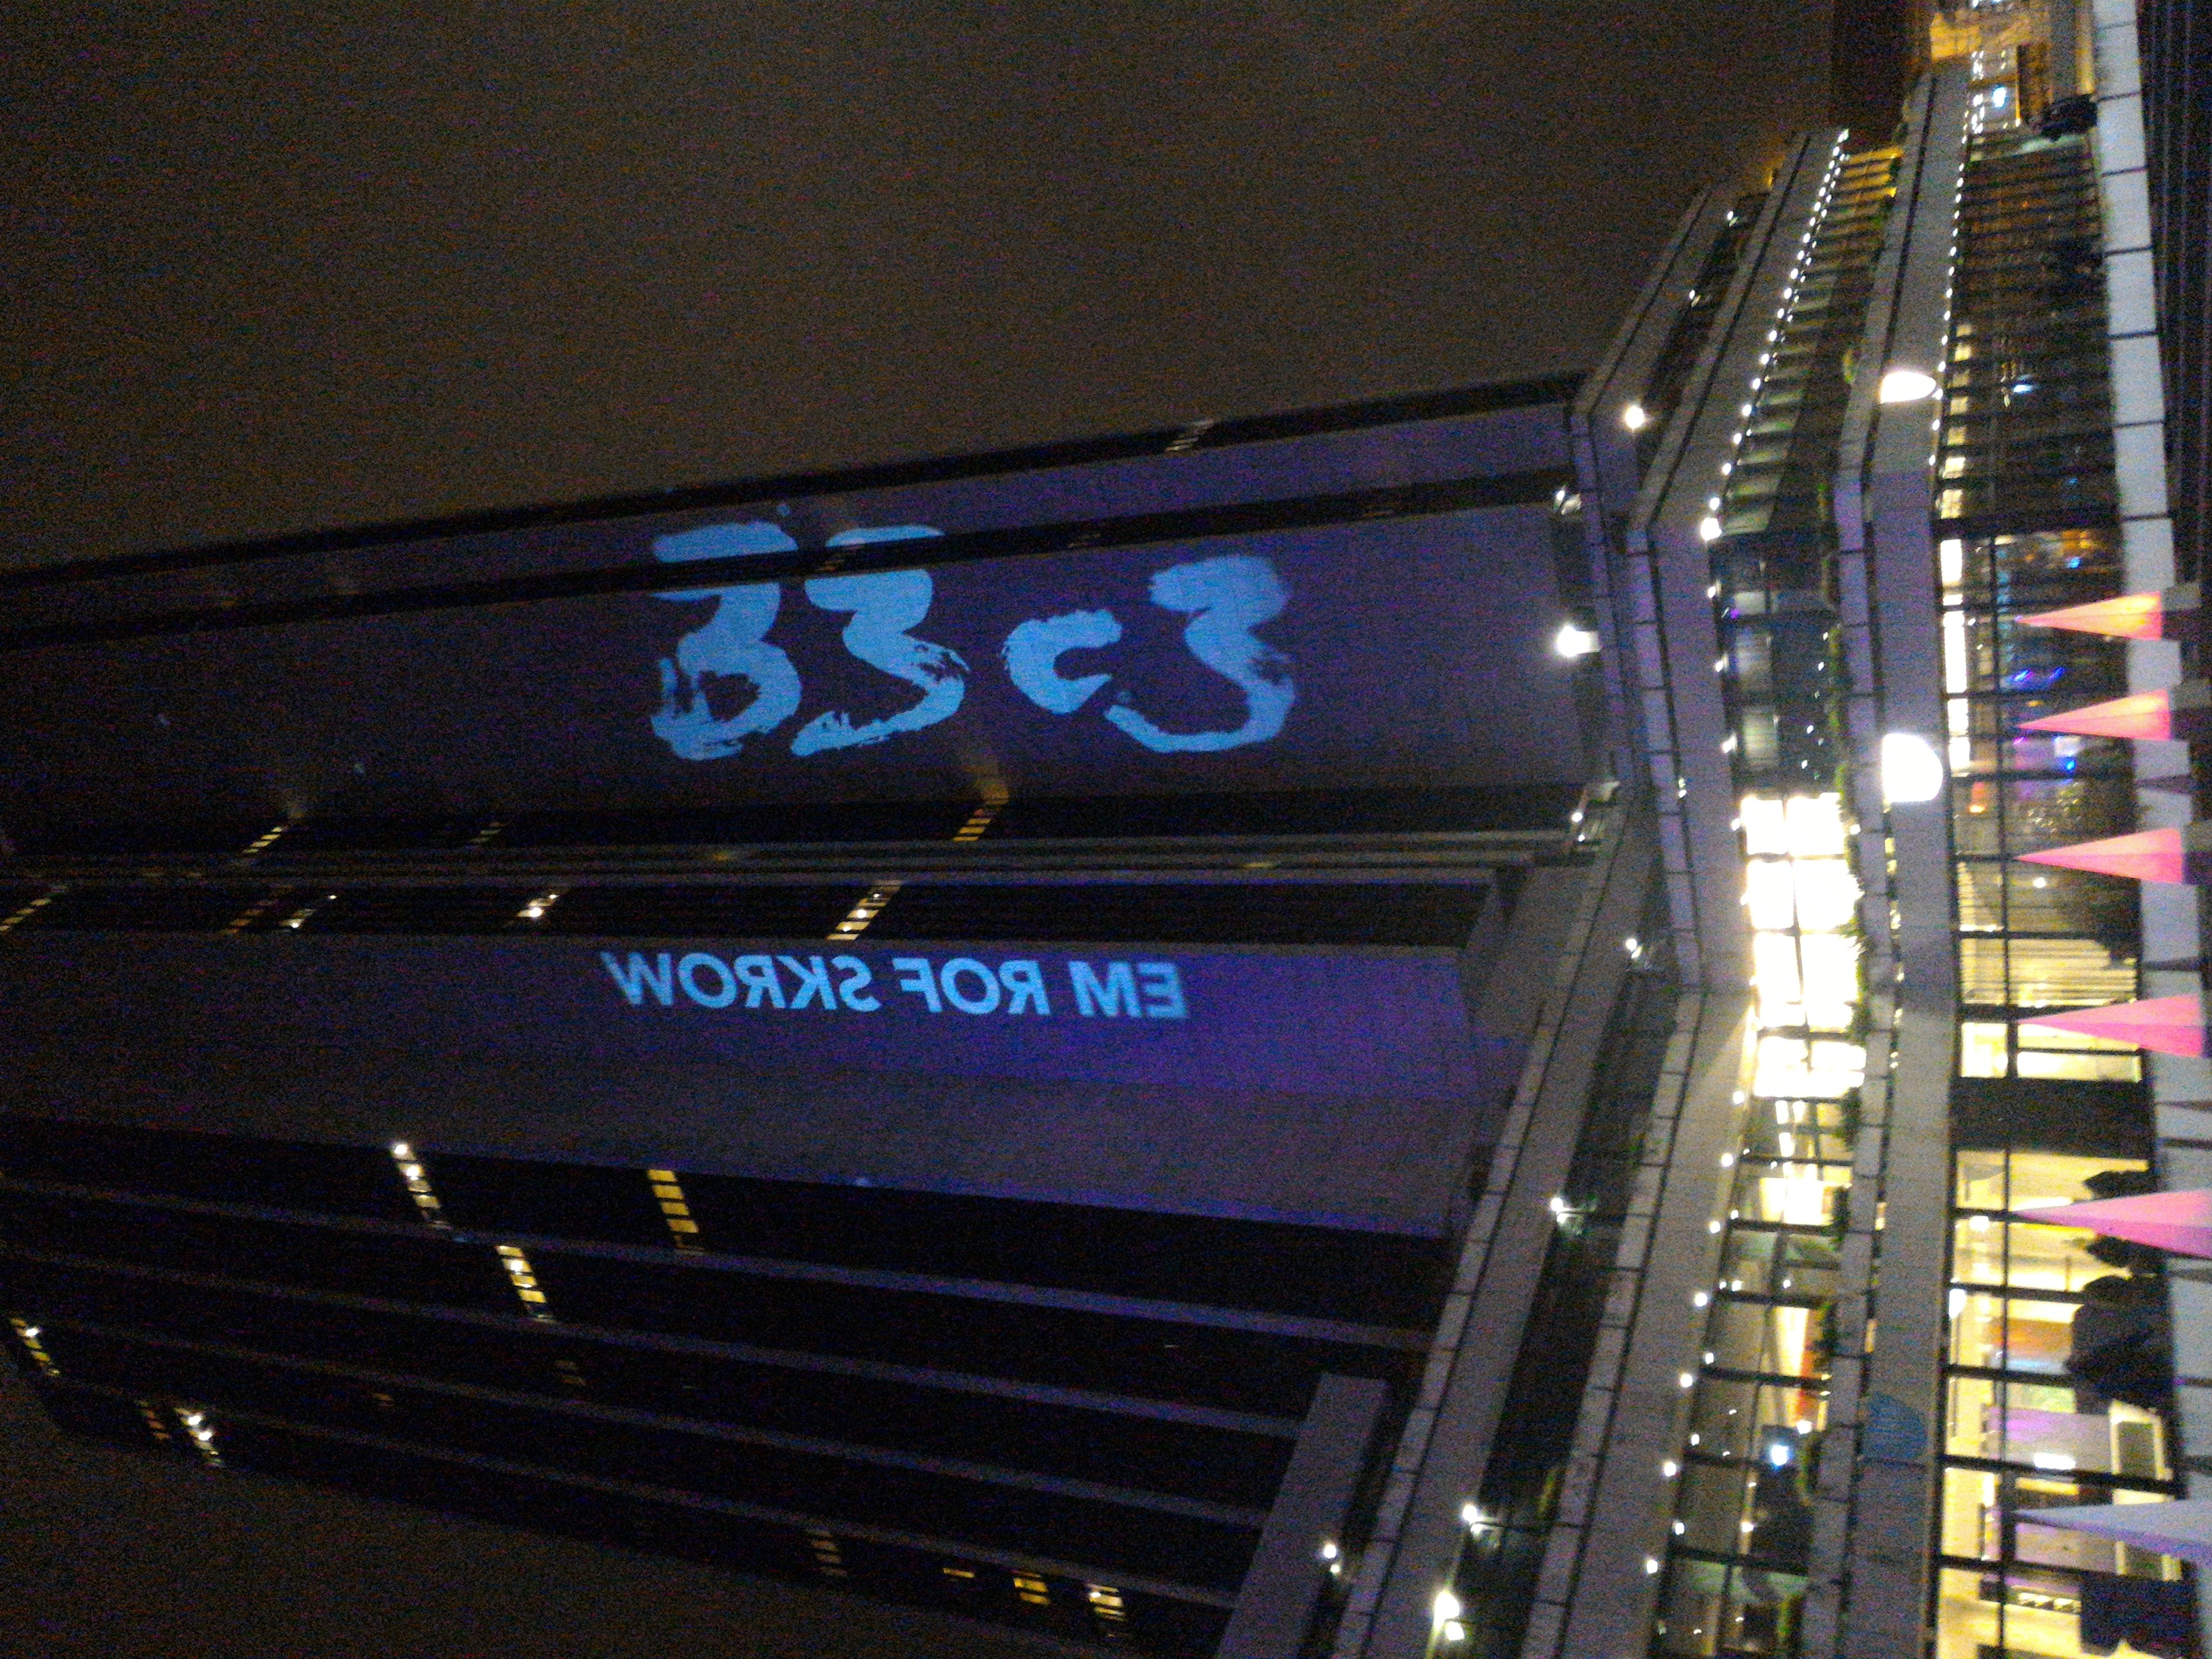 light logo of 33C3 on the building